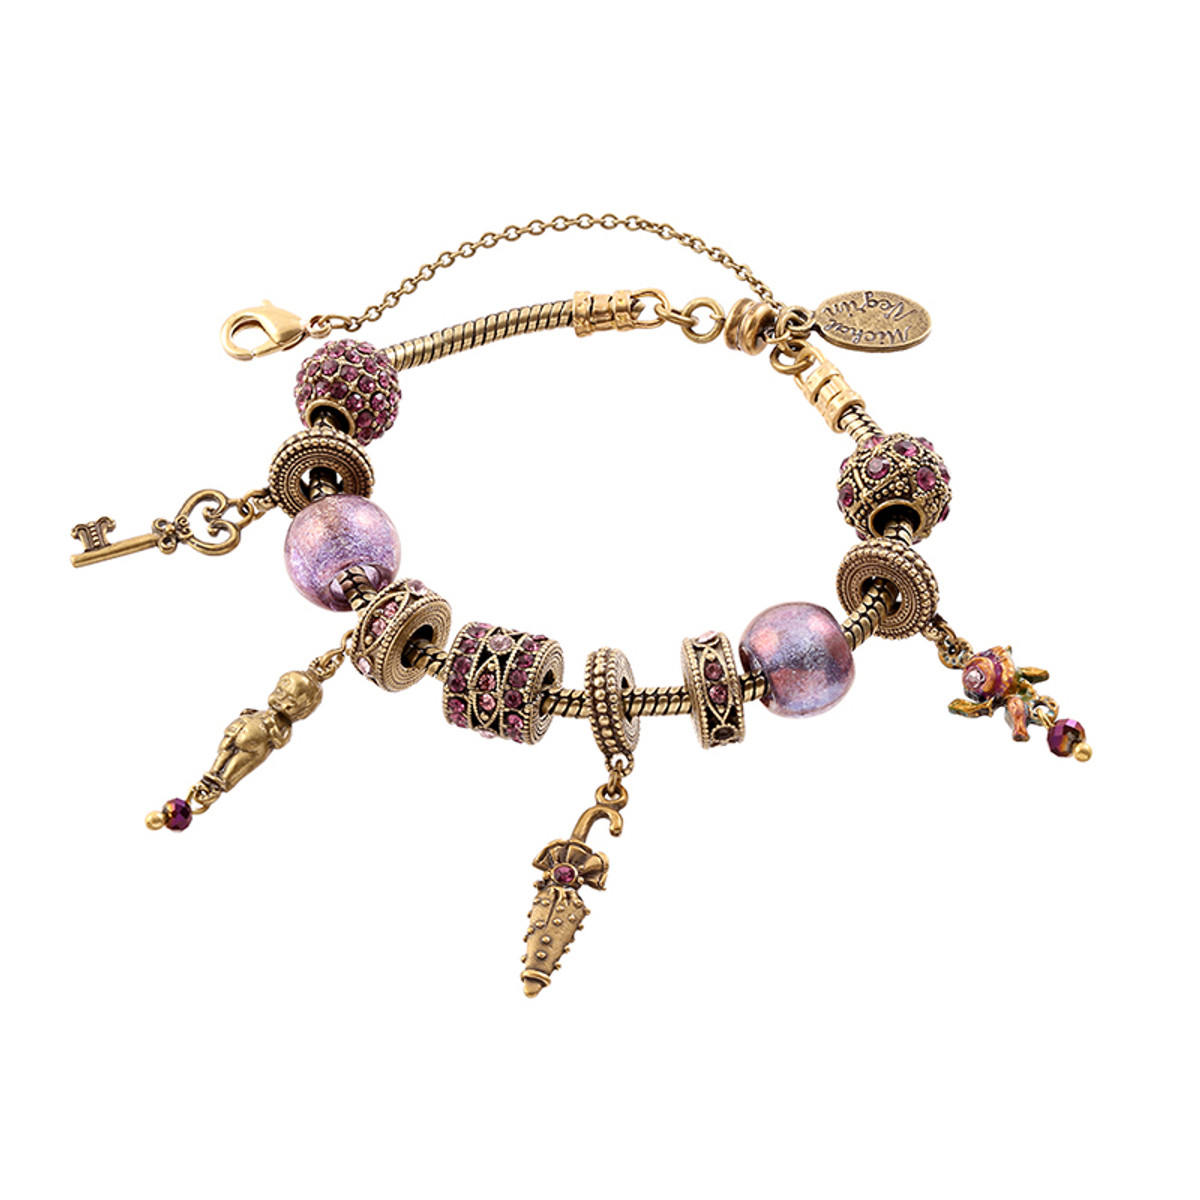 Michal Negrin Keychain Bracelet - Multi Color